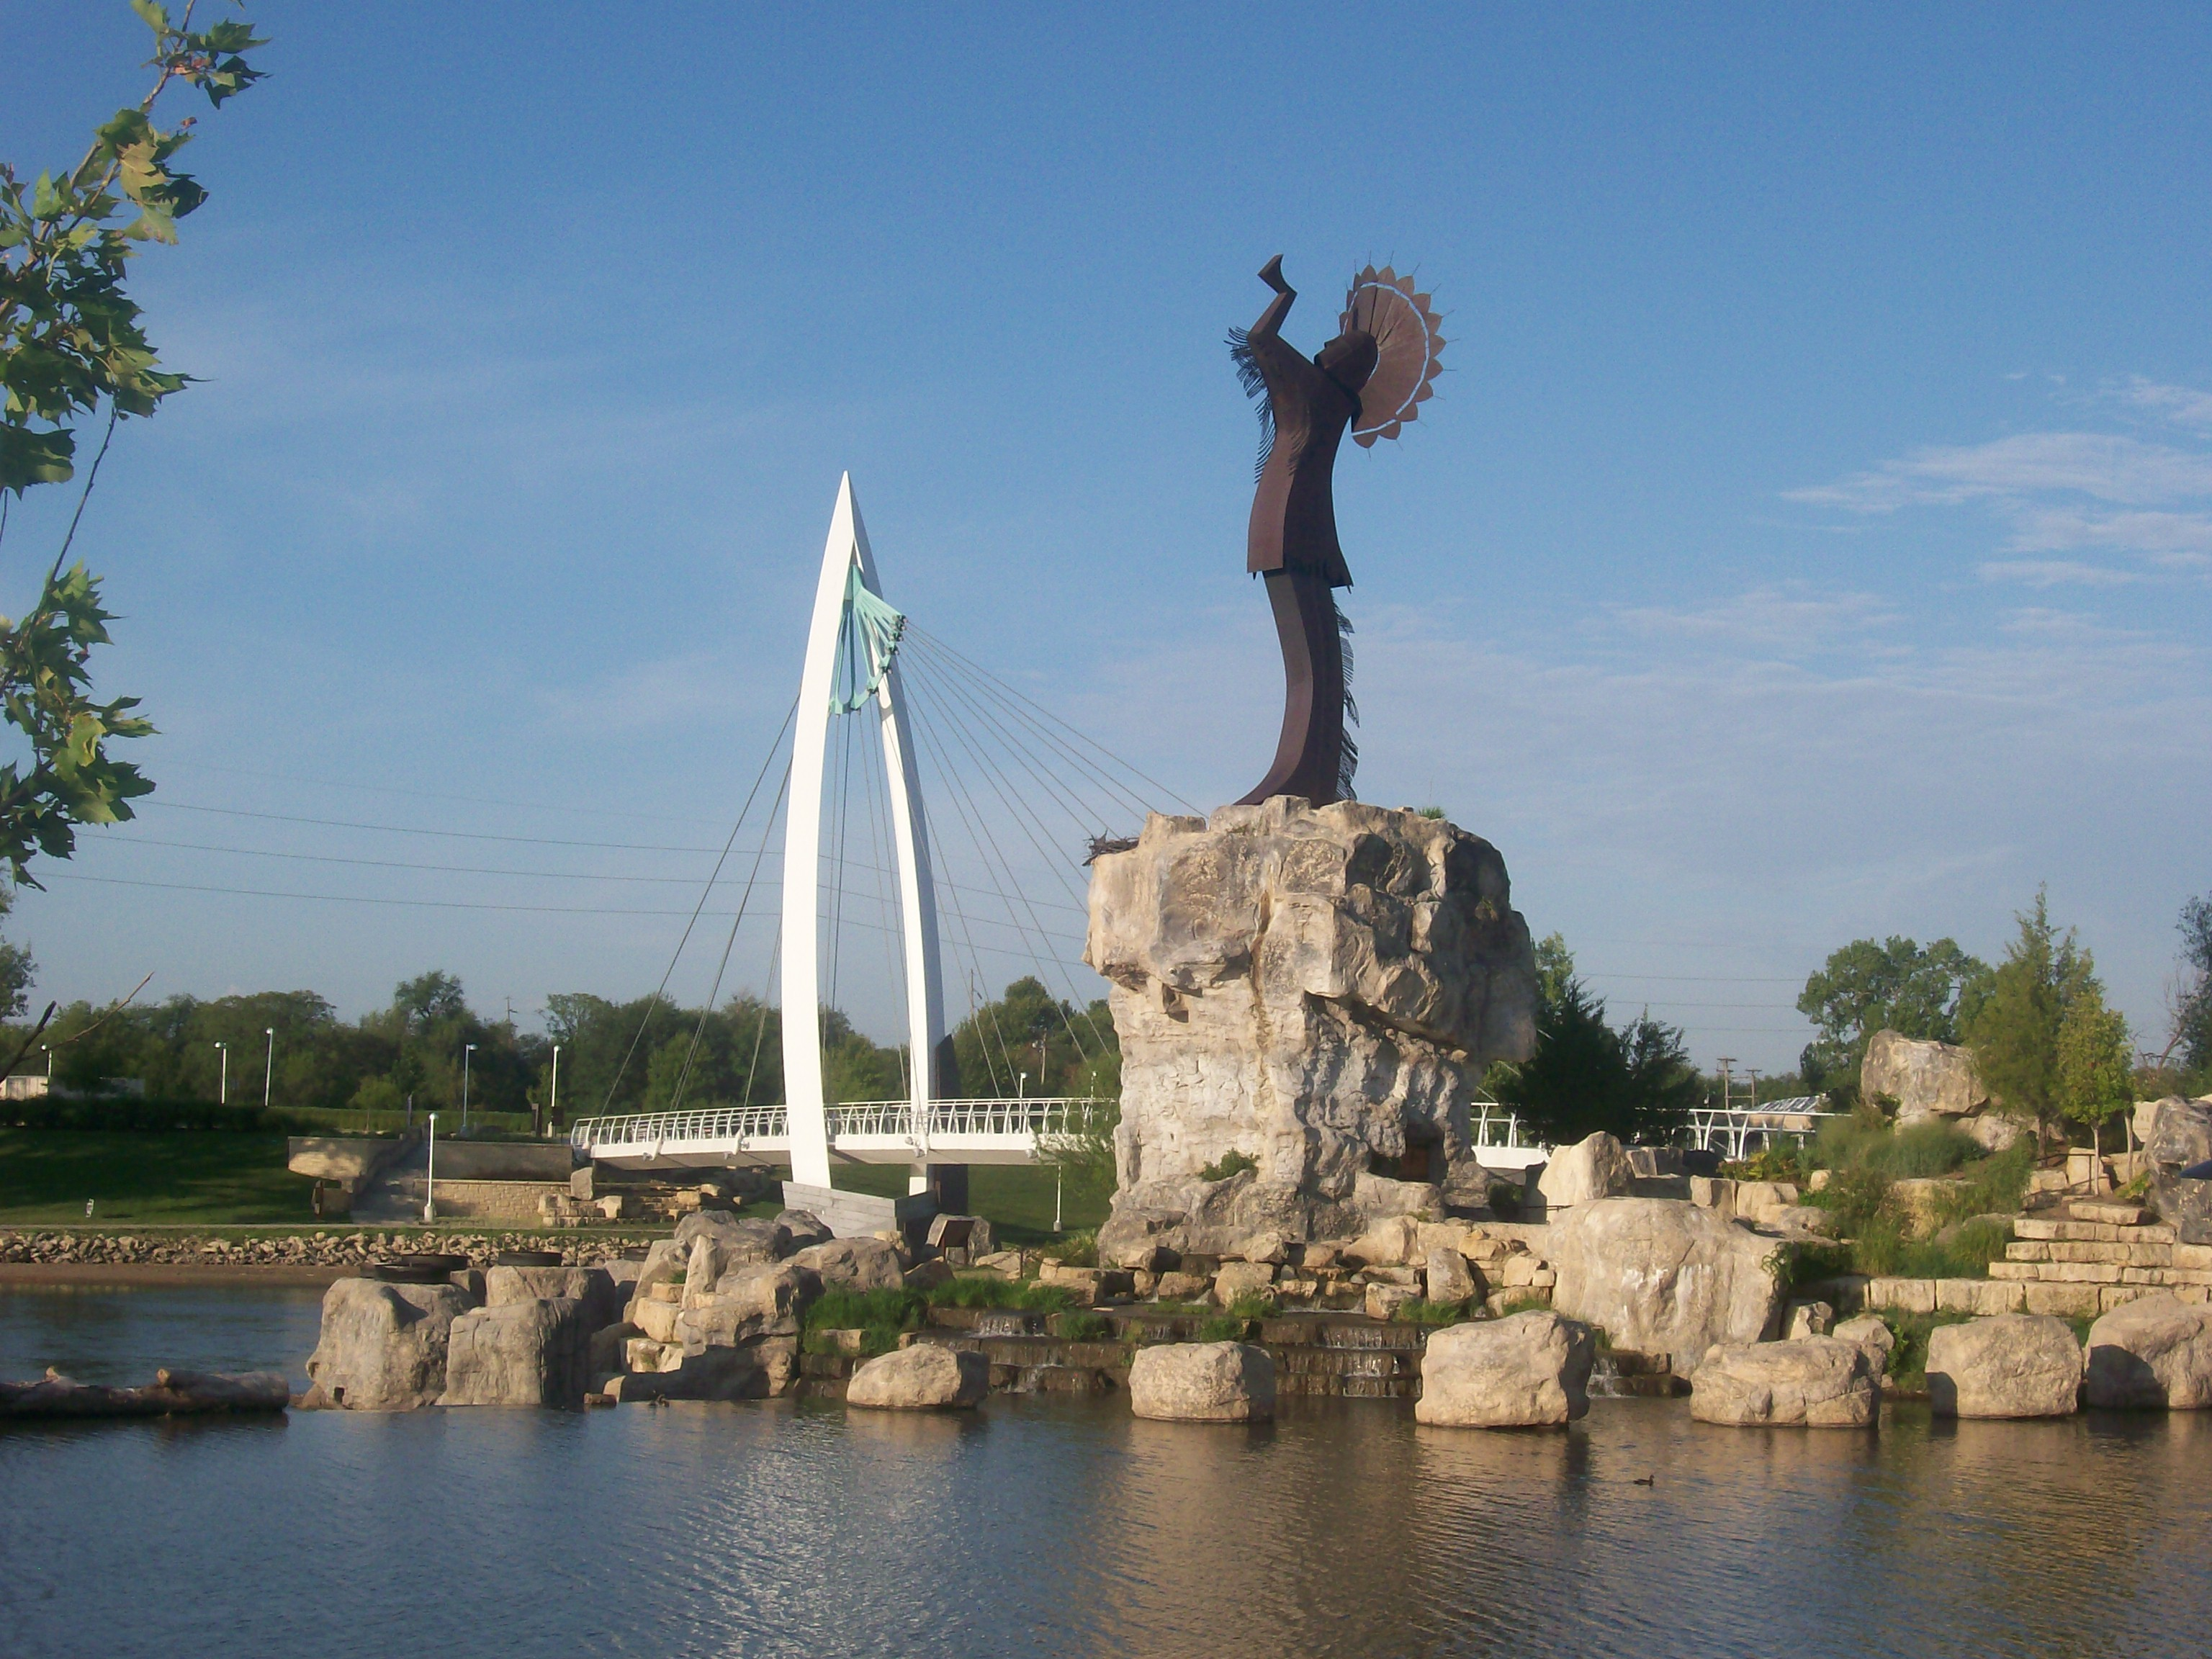 From its creation in 1974, the Keeper of the Plains has become the symbol of the city of Wichita.